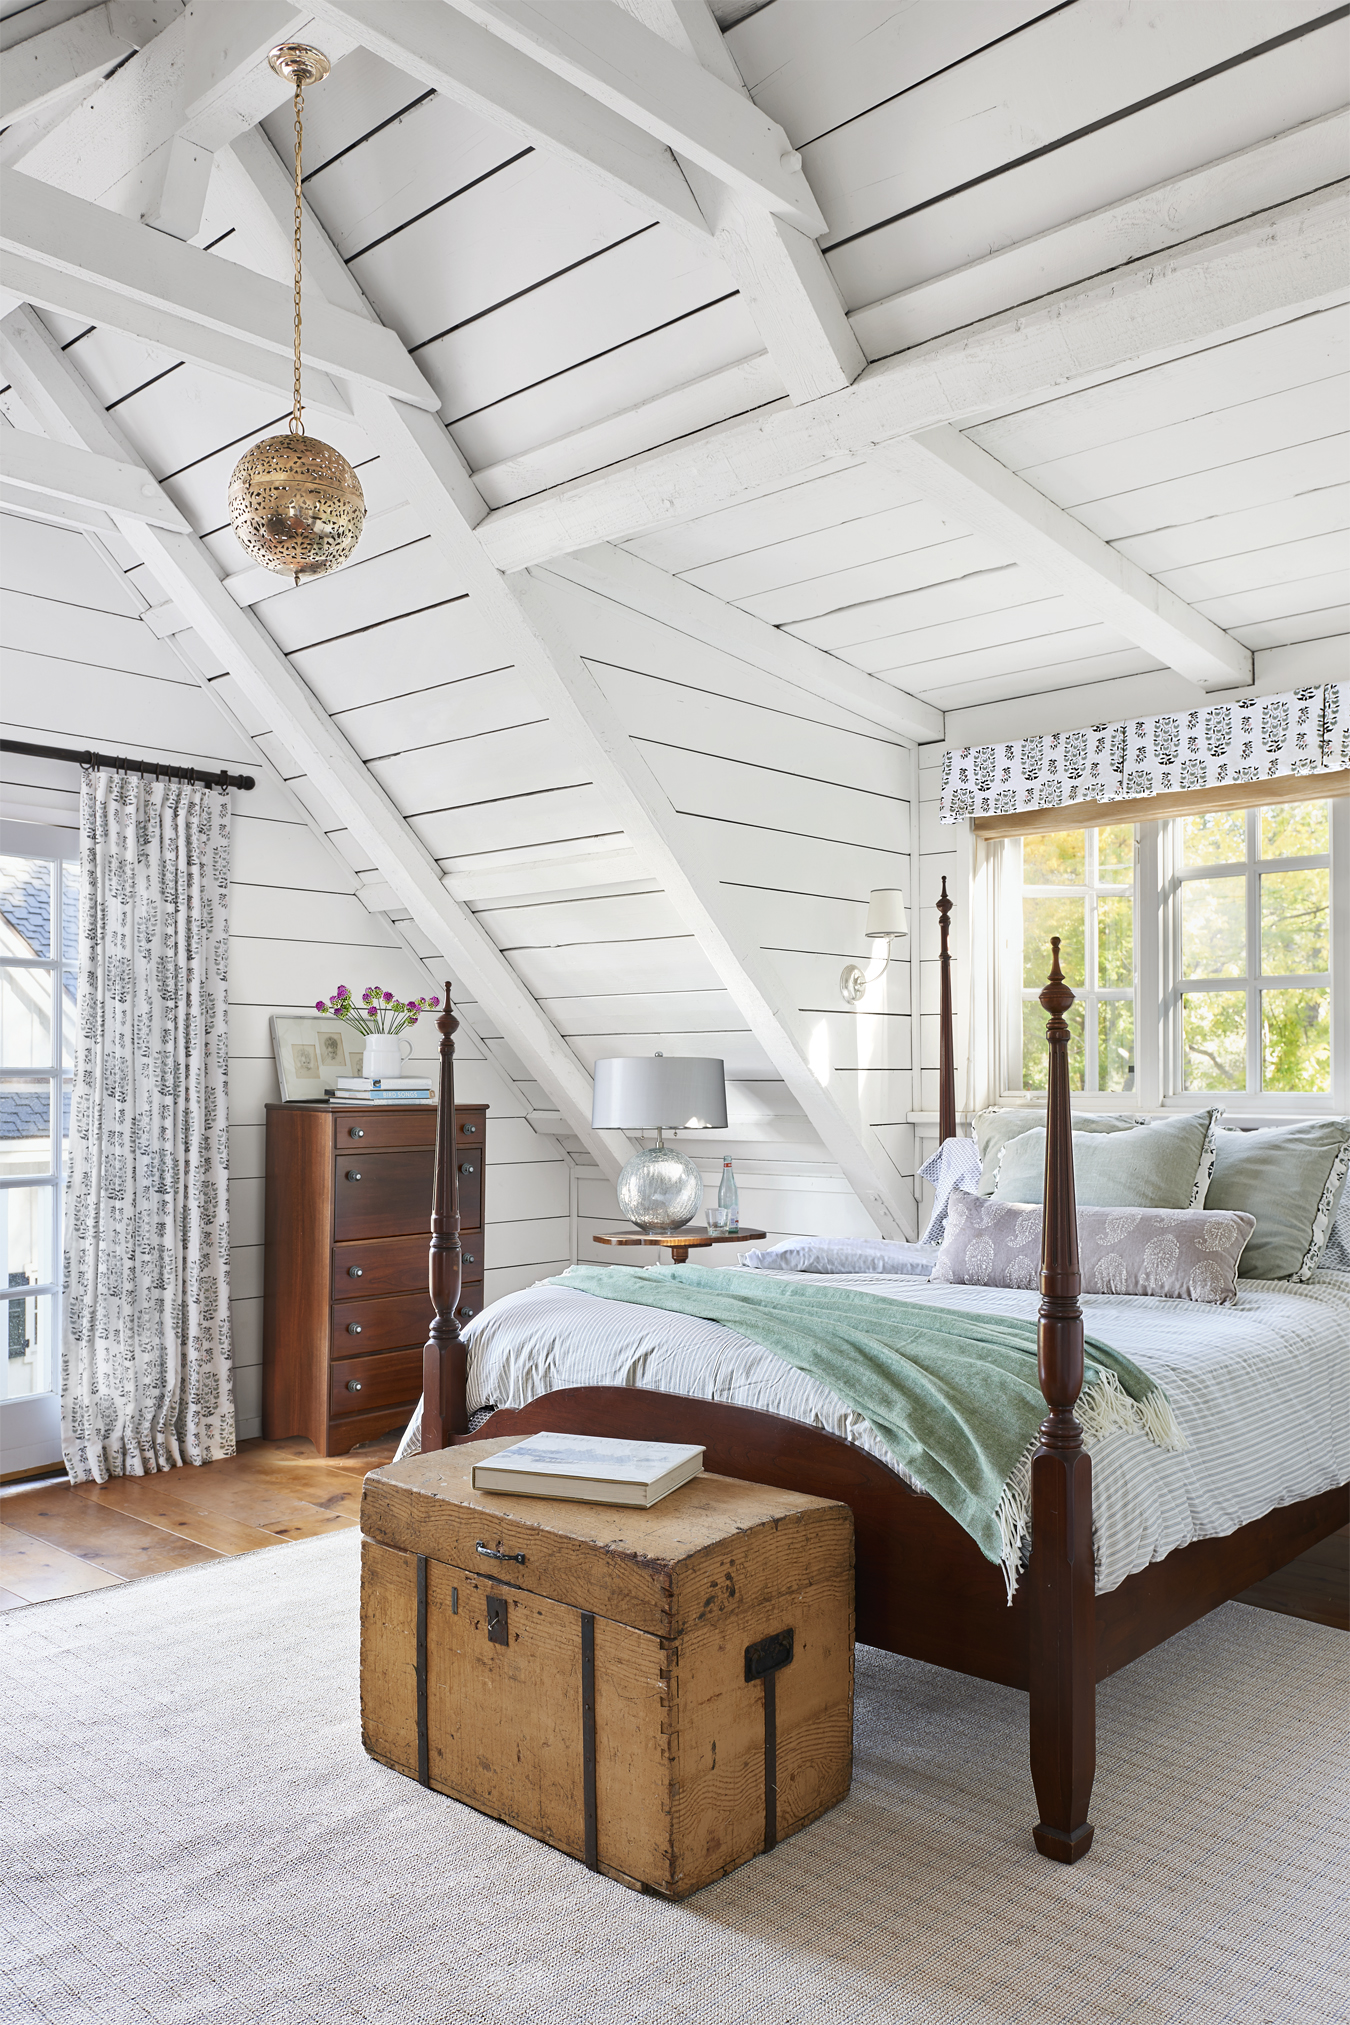 101 Bedroom Decorating Ideas in 2017 - Designs for ... on Beautiful Room Decoration  id=33189